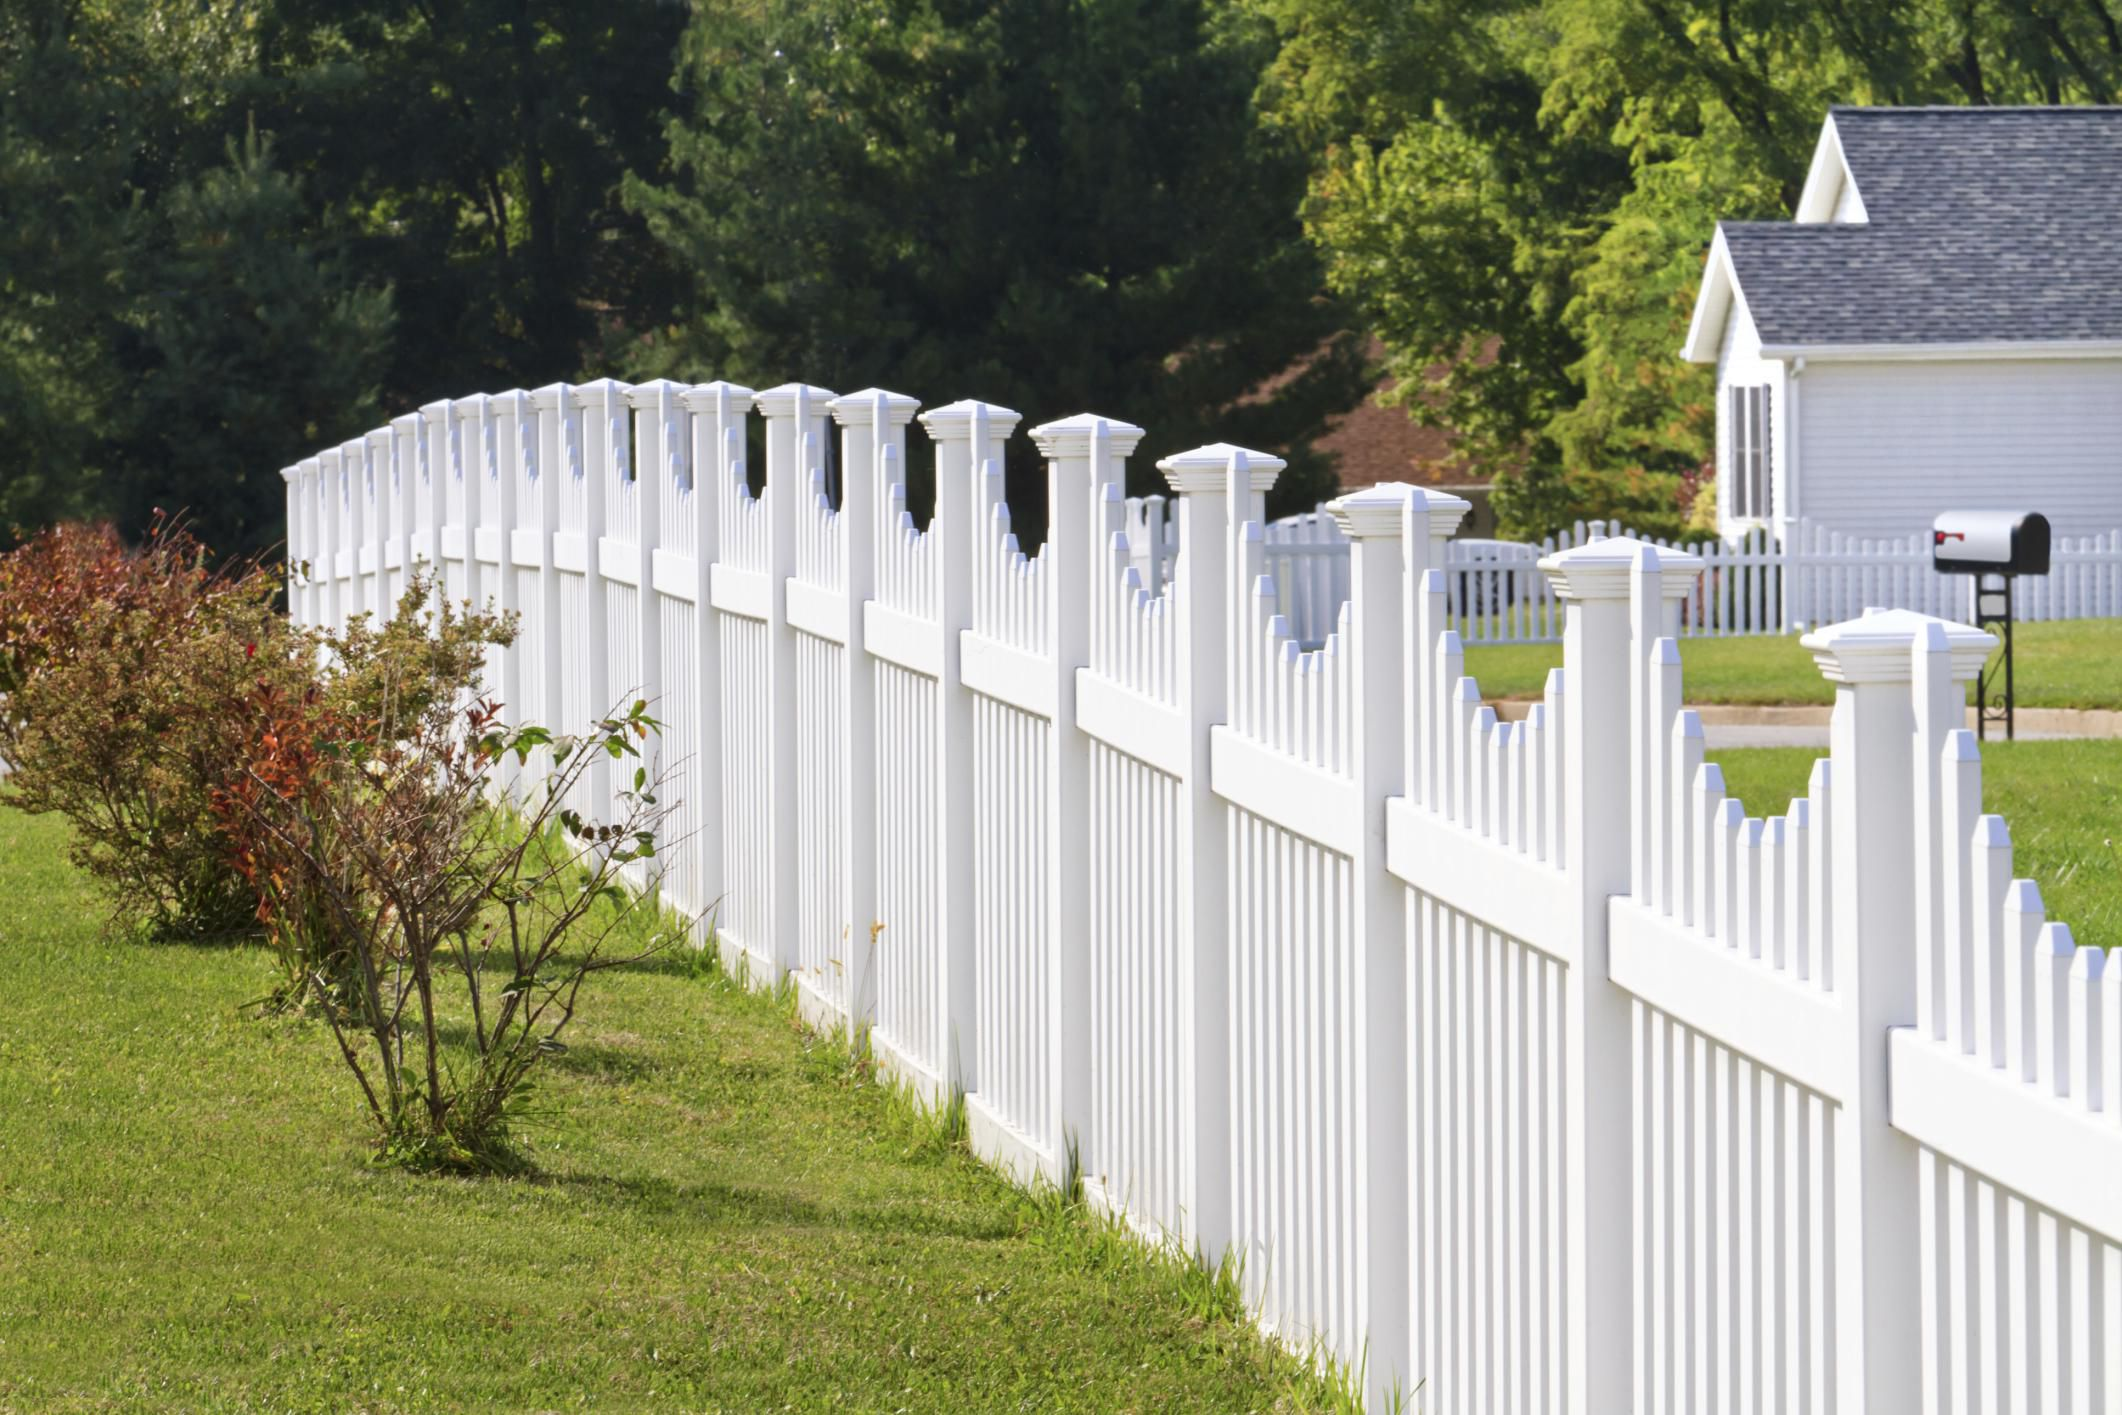 ways to cover an ugly chainlink fence